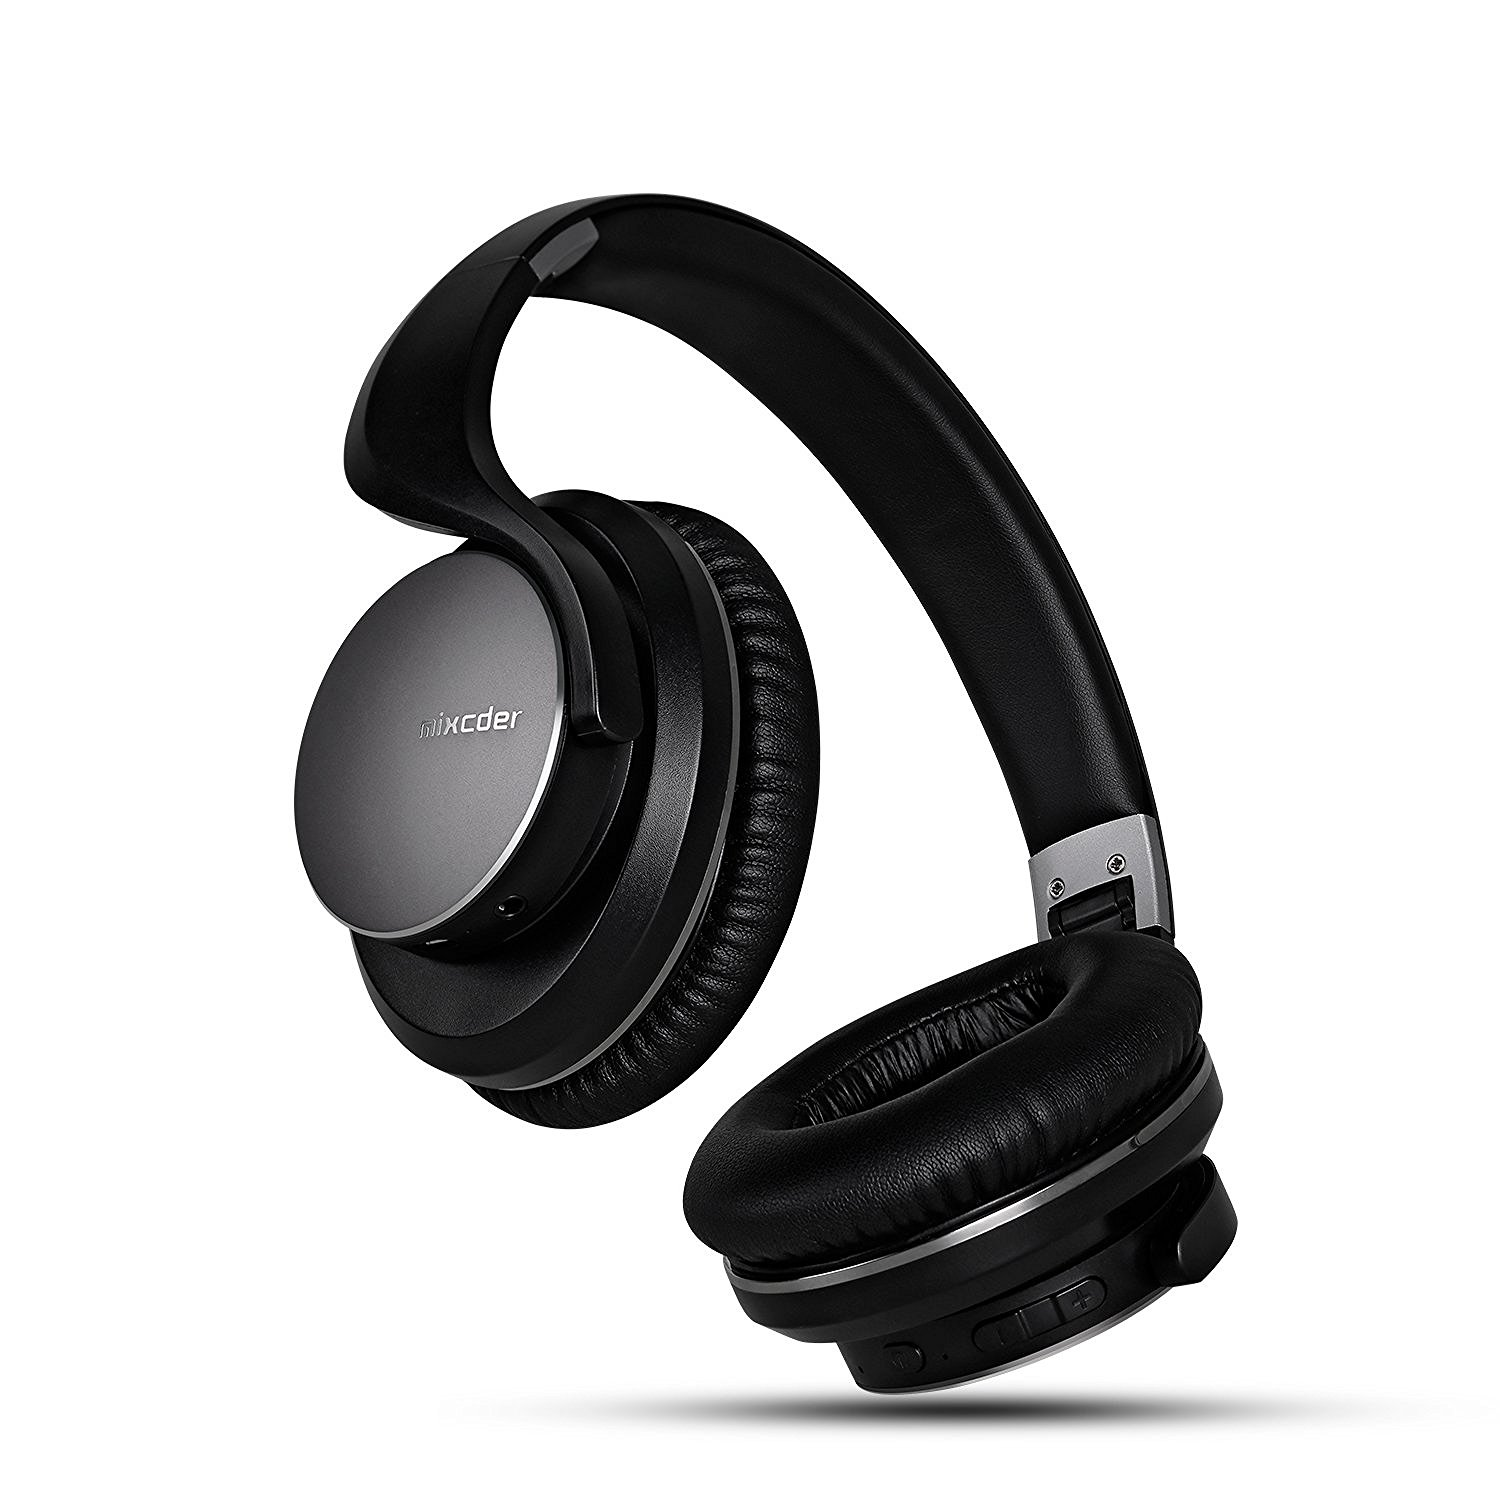 shareme 5 bluetooth headphone impression and reviews wanted globally head. Black Bedroom Furniture Sets. Home Design Ideas